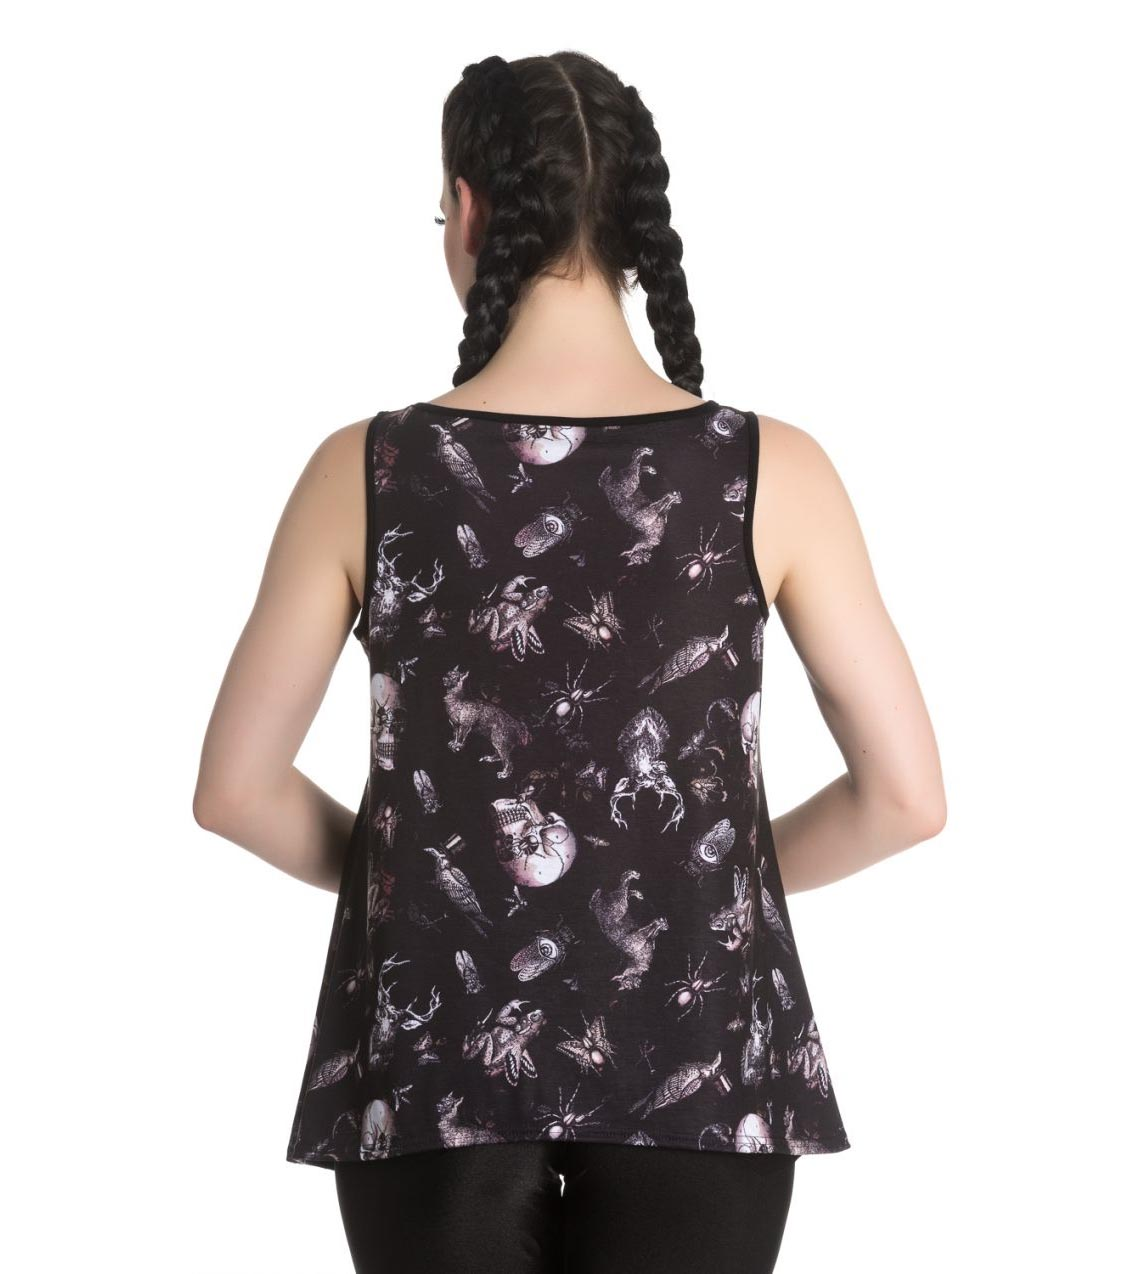 Hell-Bunny-Black-Vest-Cami-Top-Goth-Witch-DARWIN-Taxidermy-Skulls-All-Sizes thumbnail 9